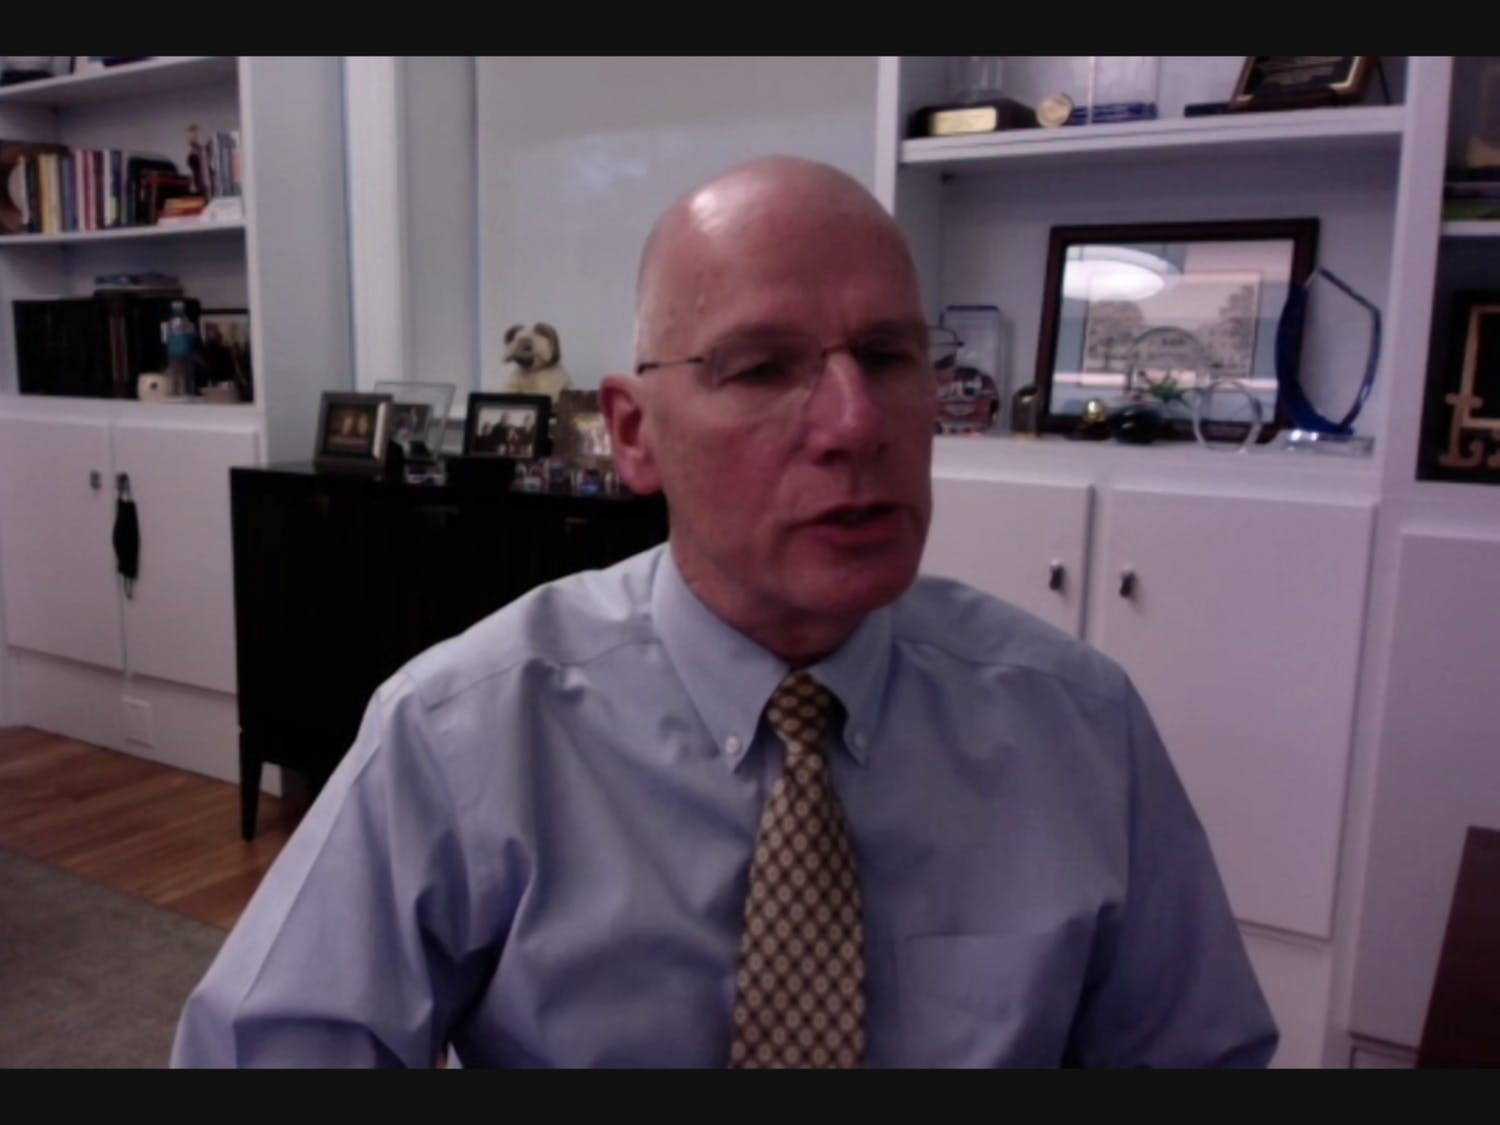 Screenshot from the Faculty Executive Committee meeting held over Zoom on Monday, Jan. 25, 2021.